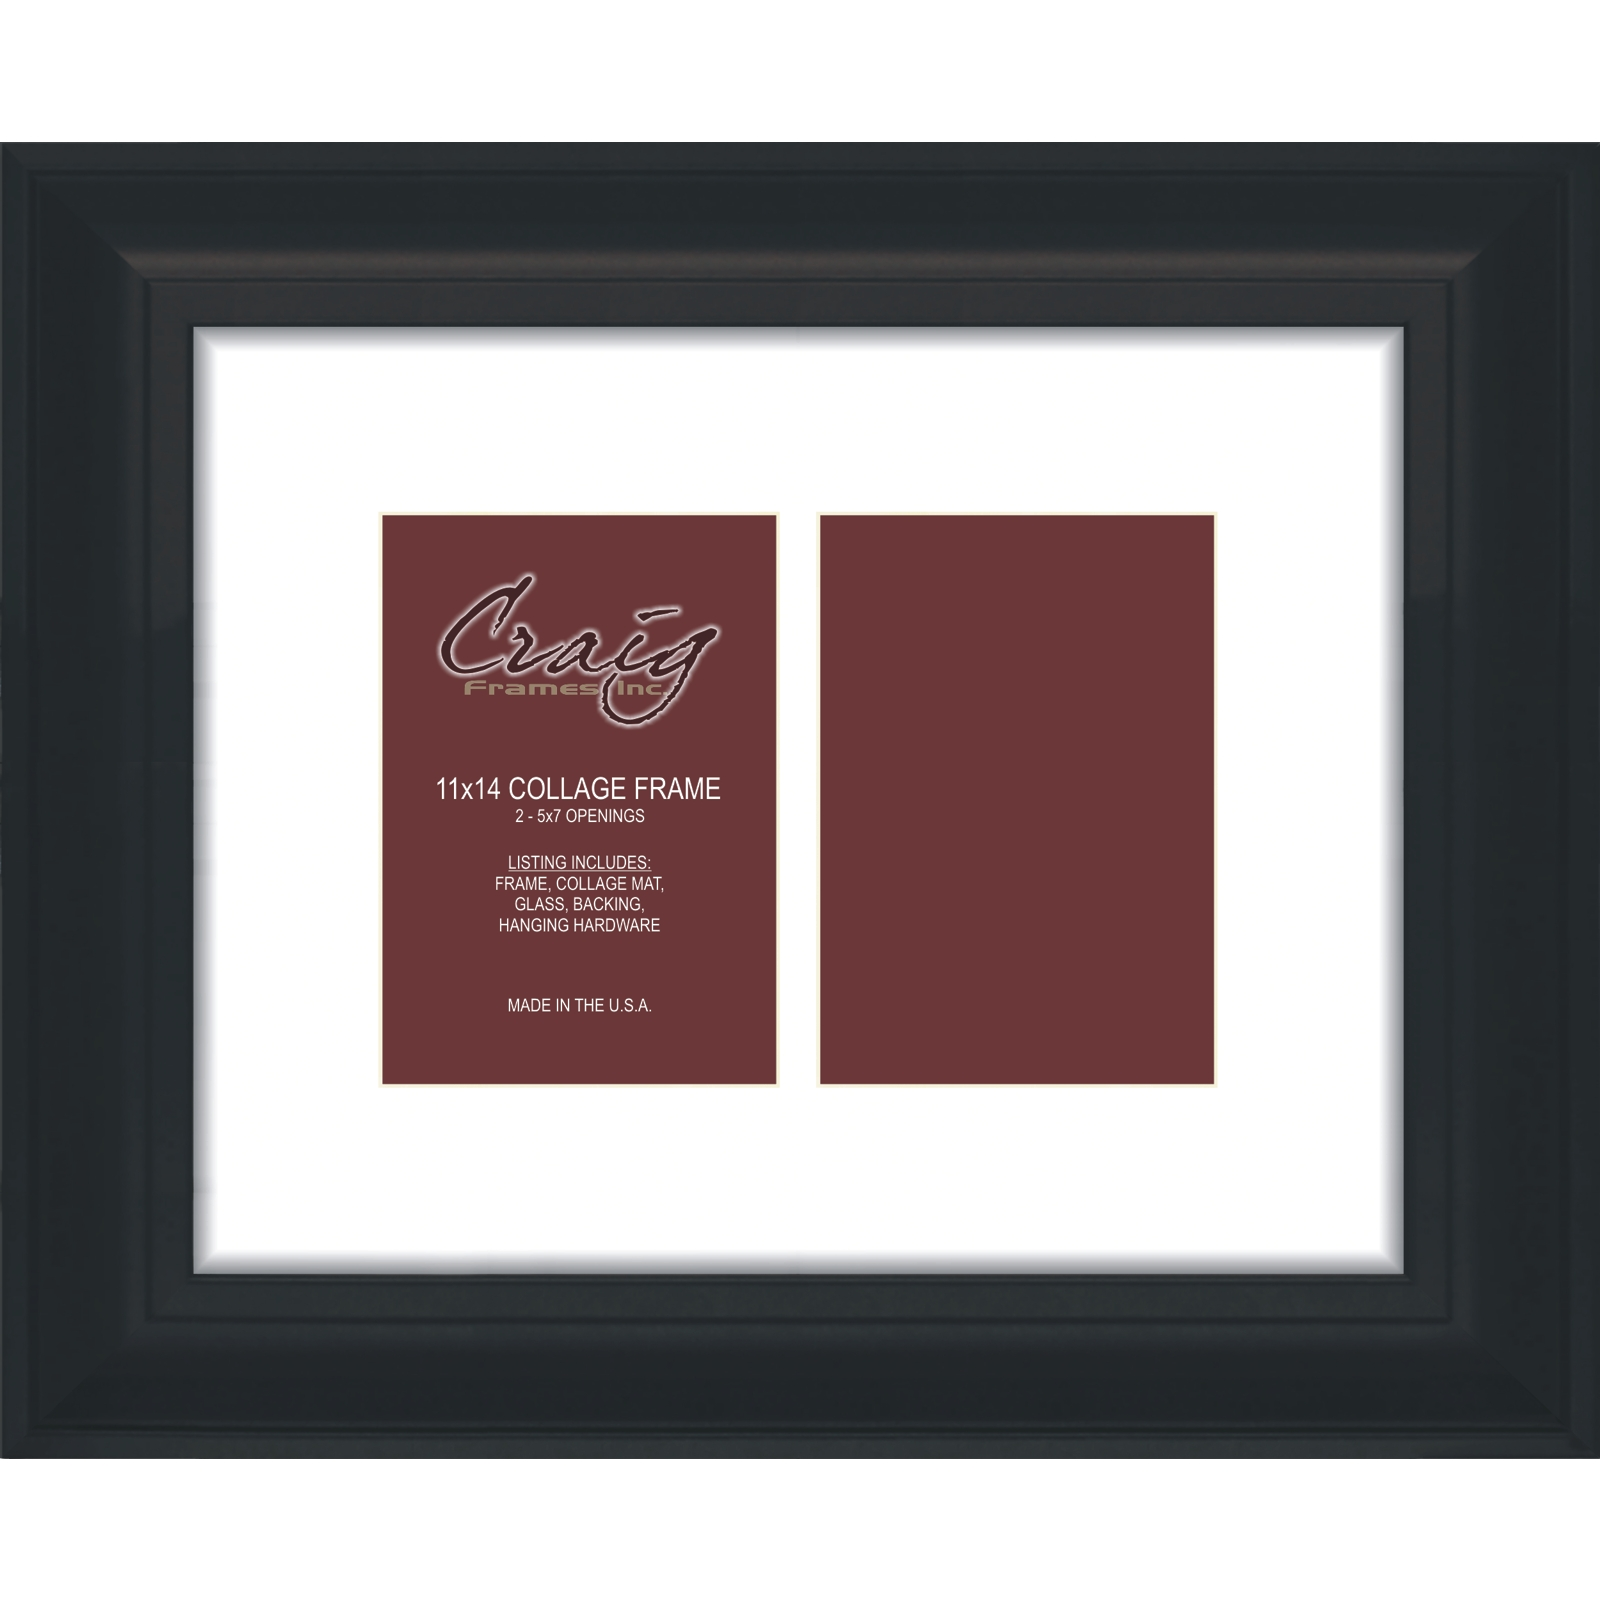 Craig Frames 11x14 2 Black Framed Collage Mat With Openings For 2